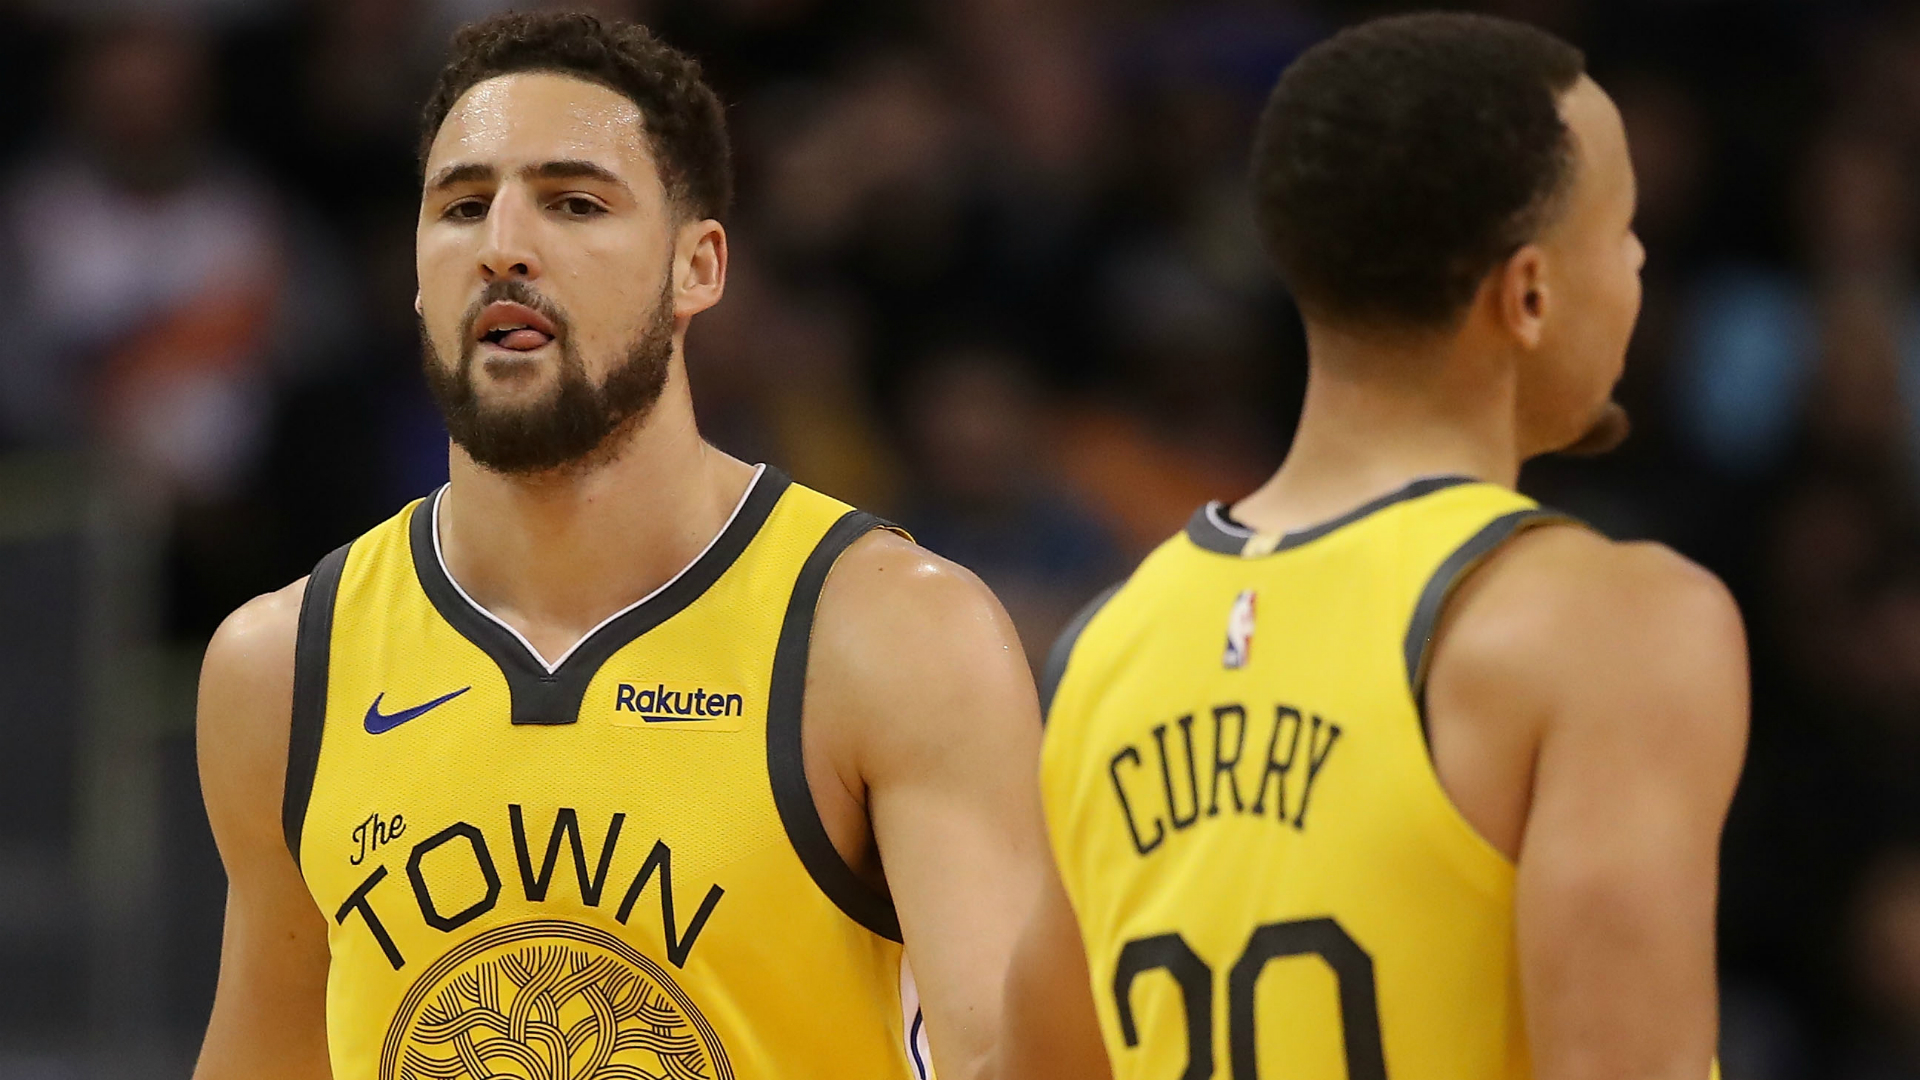 Warriors' Stephen Curry, Klay Thompson take part in Oakland protest